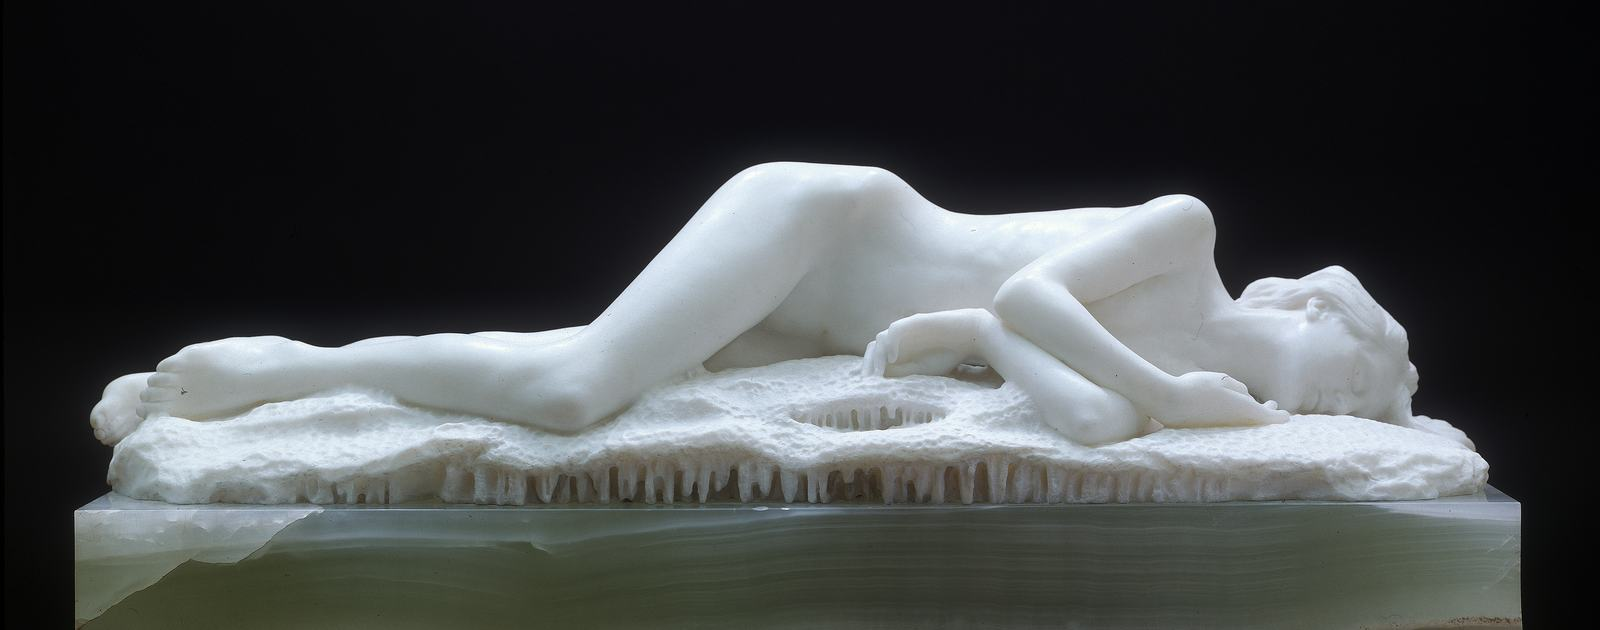 Edward Onslow Ford, Snowdrift, 1901. Artwork part of Hayward Touring's exhibition 'Elizabeth Price Curates: IN A DREAM YOU SAY A WAY TO SURVIVE AND YOU WERE FULL OF JOY', 2016-17.